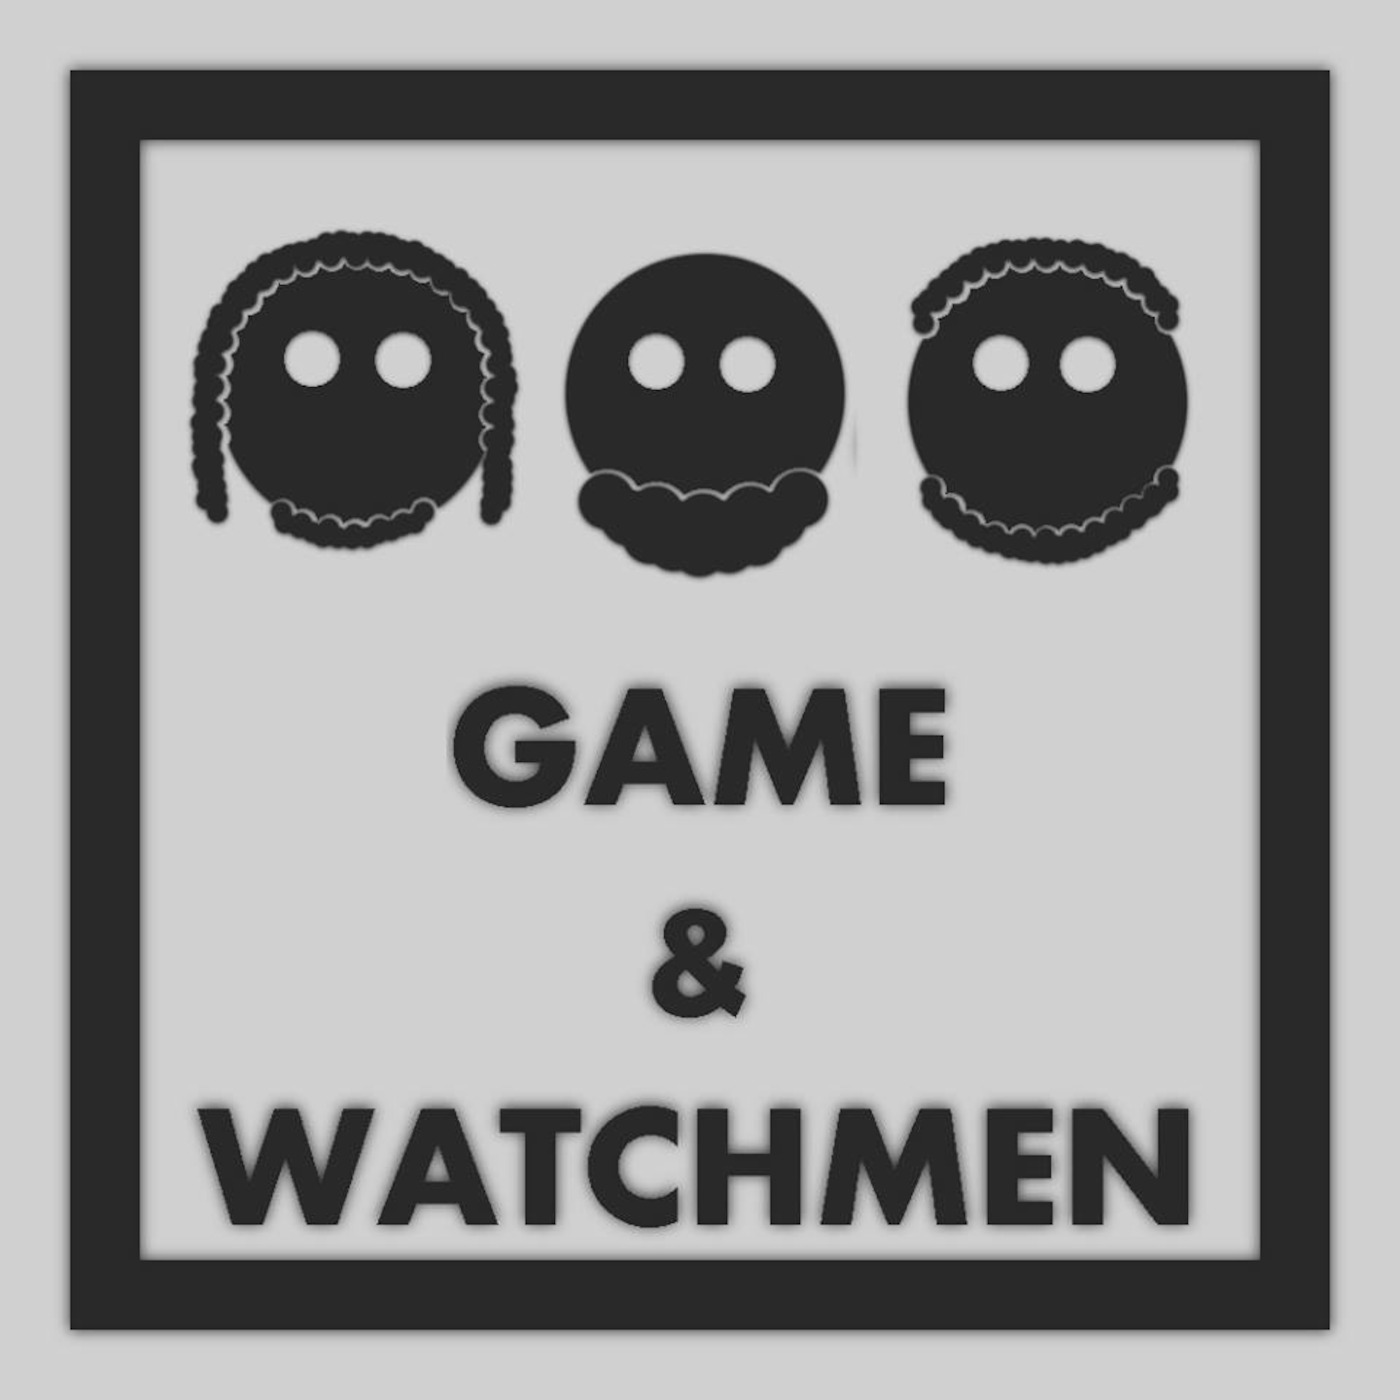 Game and Watchmen